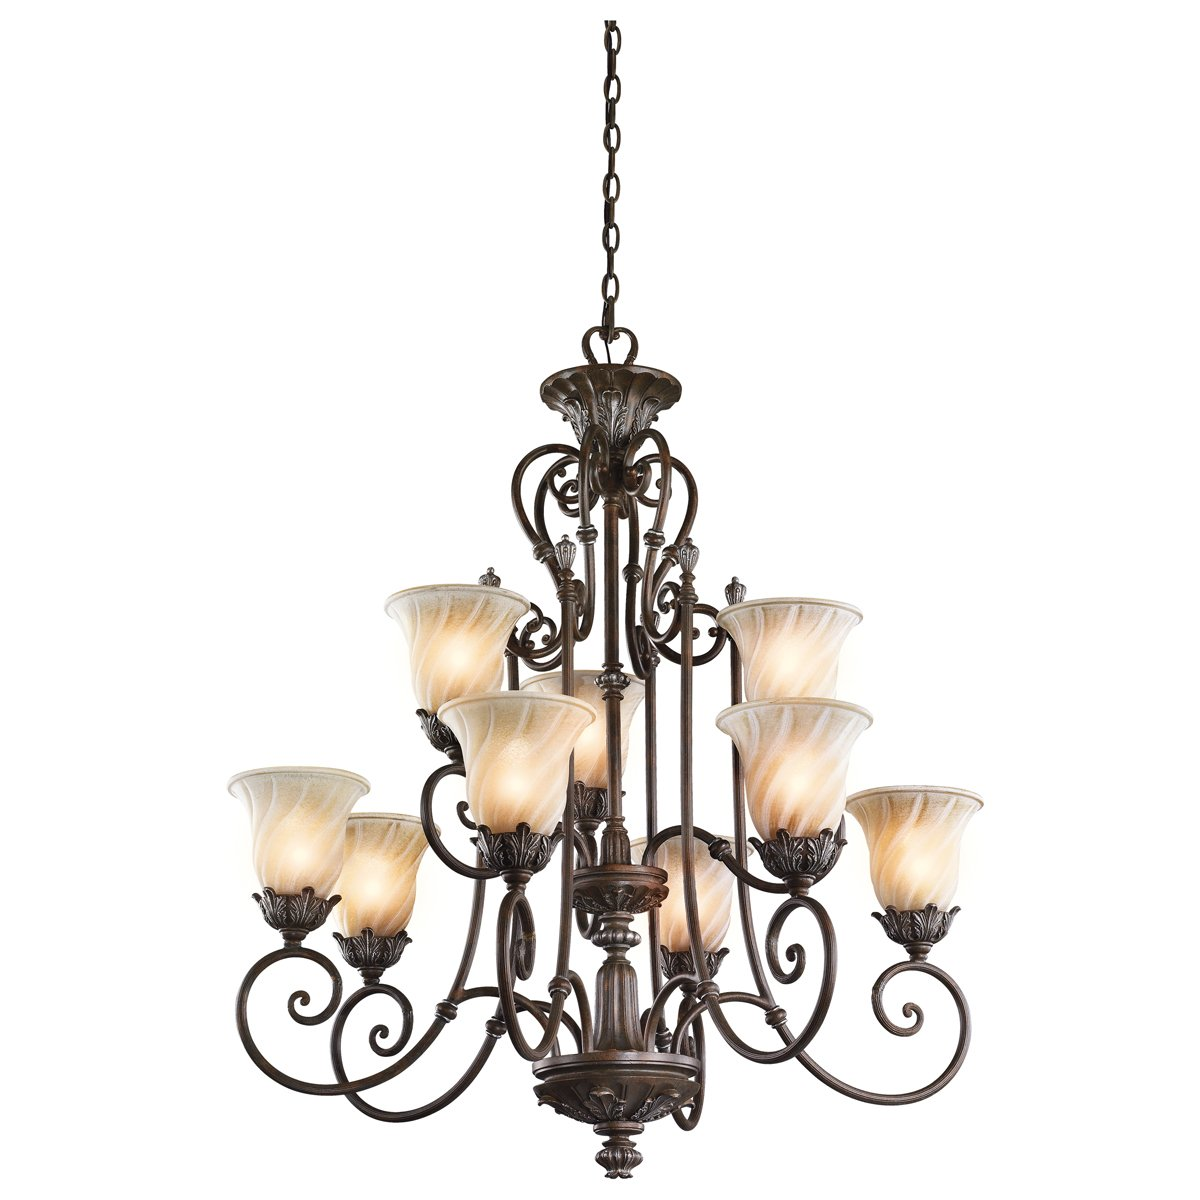 Kichler 42511LZ Sarabella Collection Chandelier 9 Light in Legacy Bronze